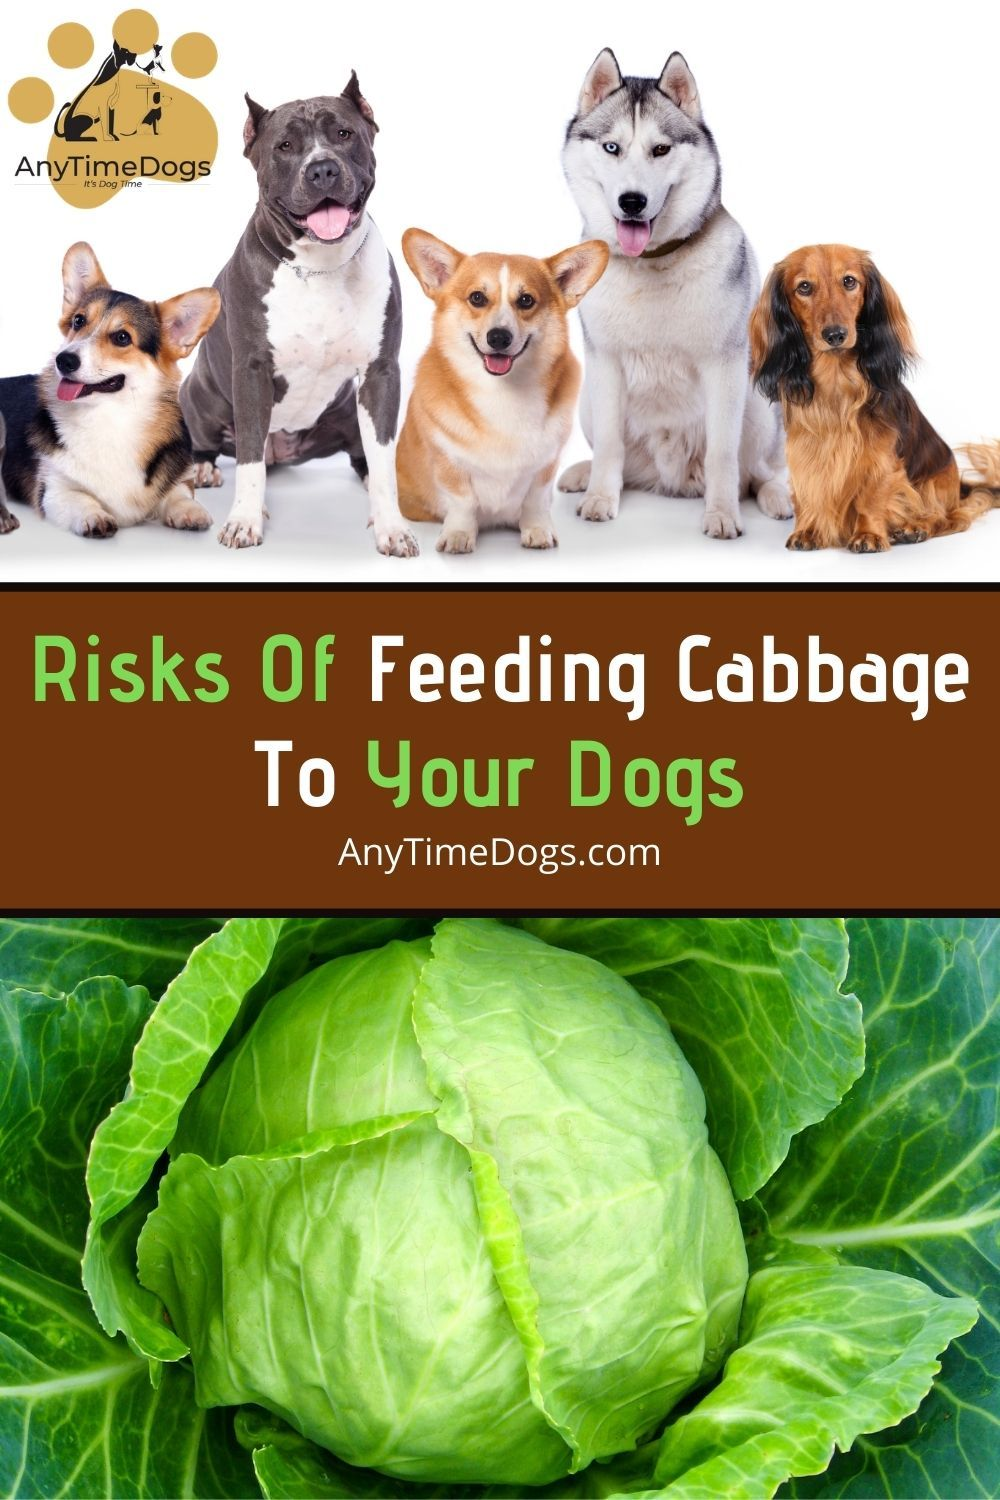 Risks Of Feeding Cabbage To Dogs In 2021 Dogs Can Dogs Eat Animals